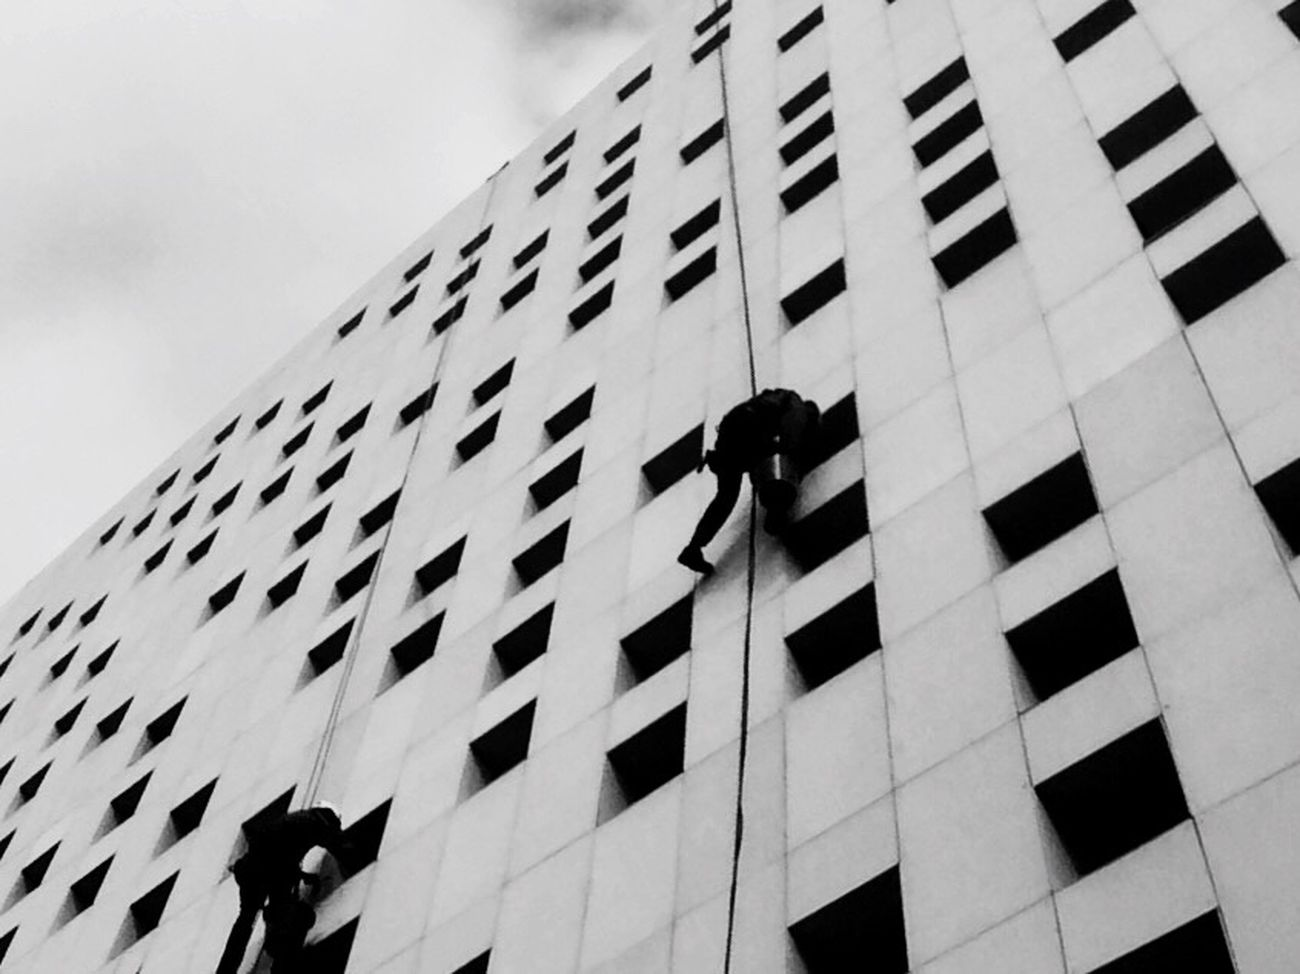 Scrolling spiders Architecture Spiderman Building Exterior Outdoors Capture The Moment Blackandwhite Window Bnw Bnw_collection